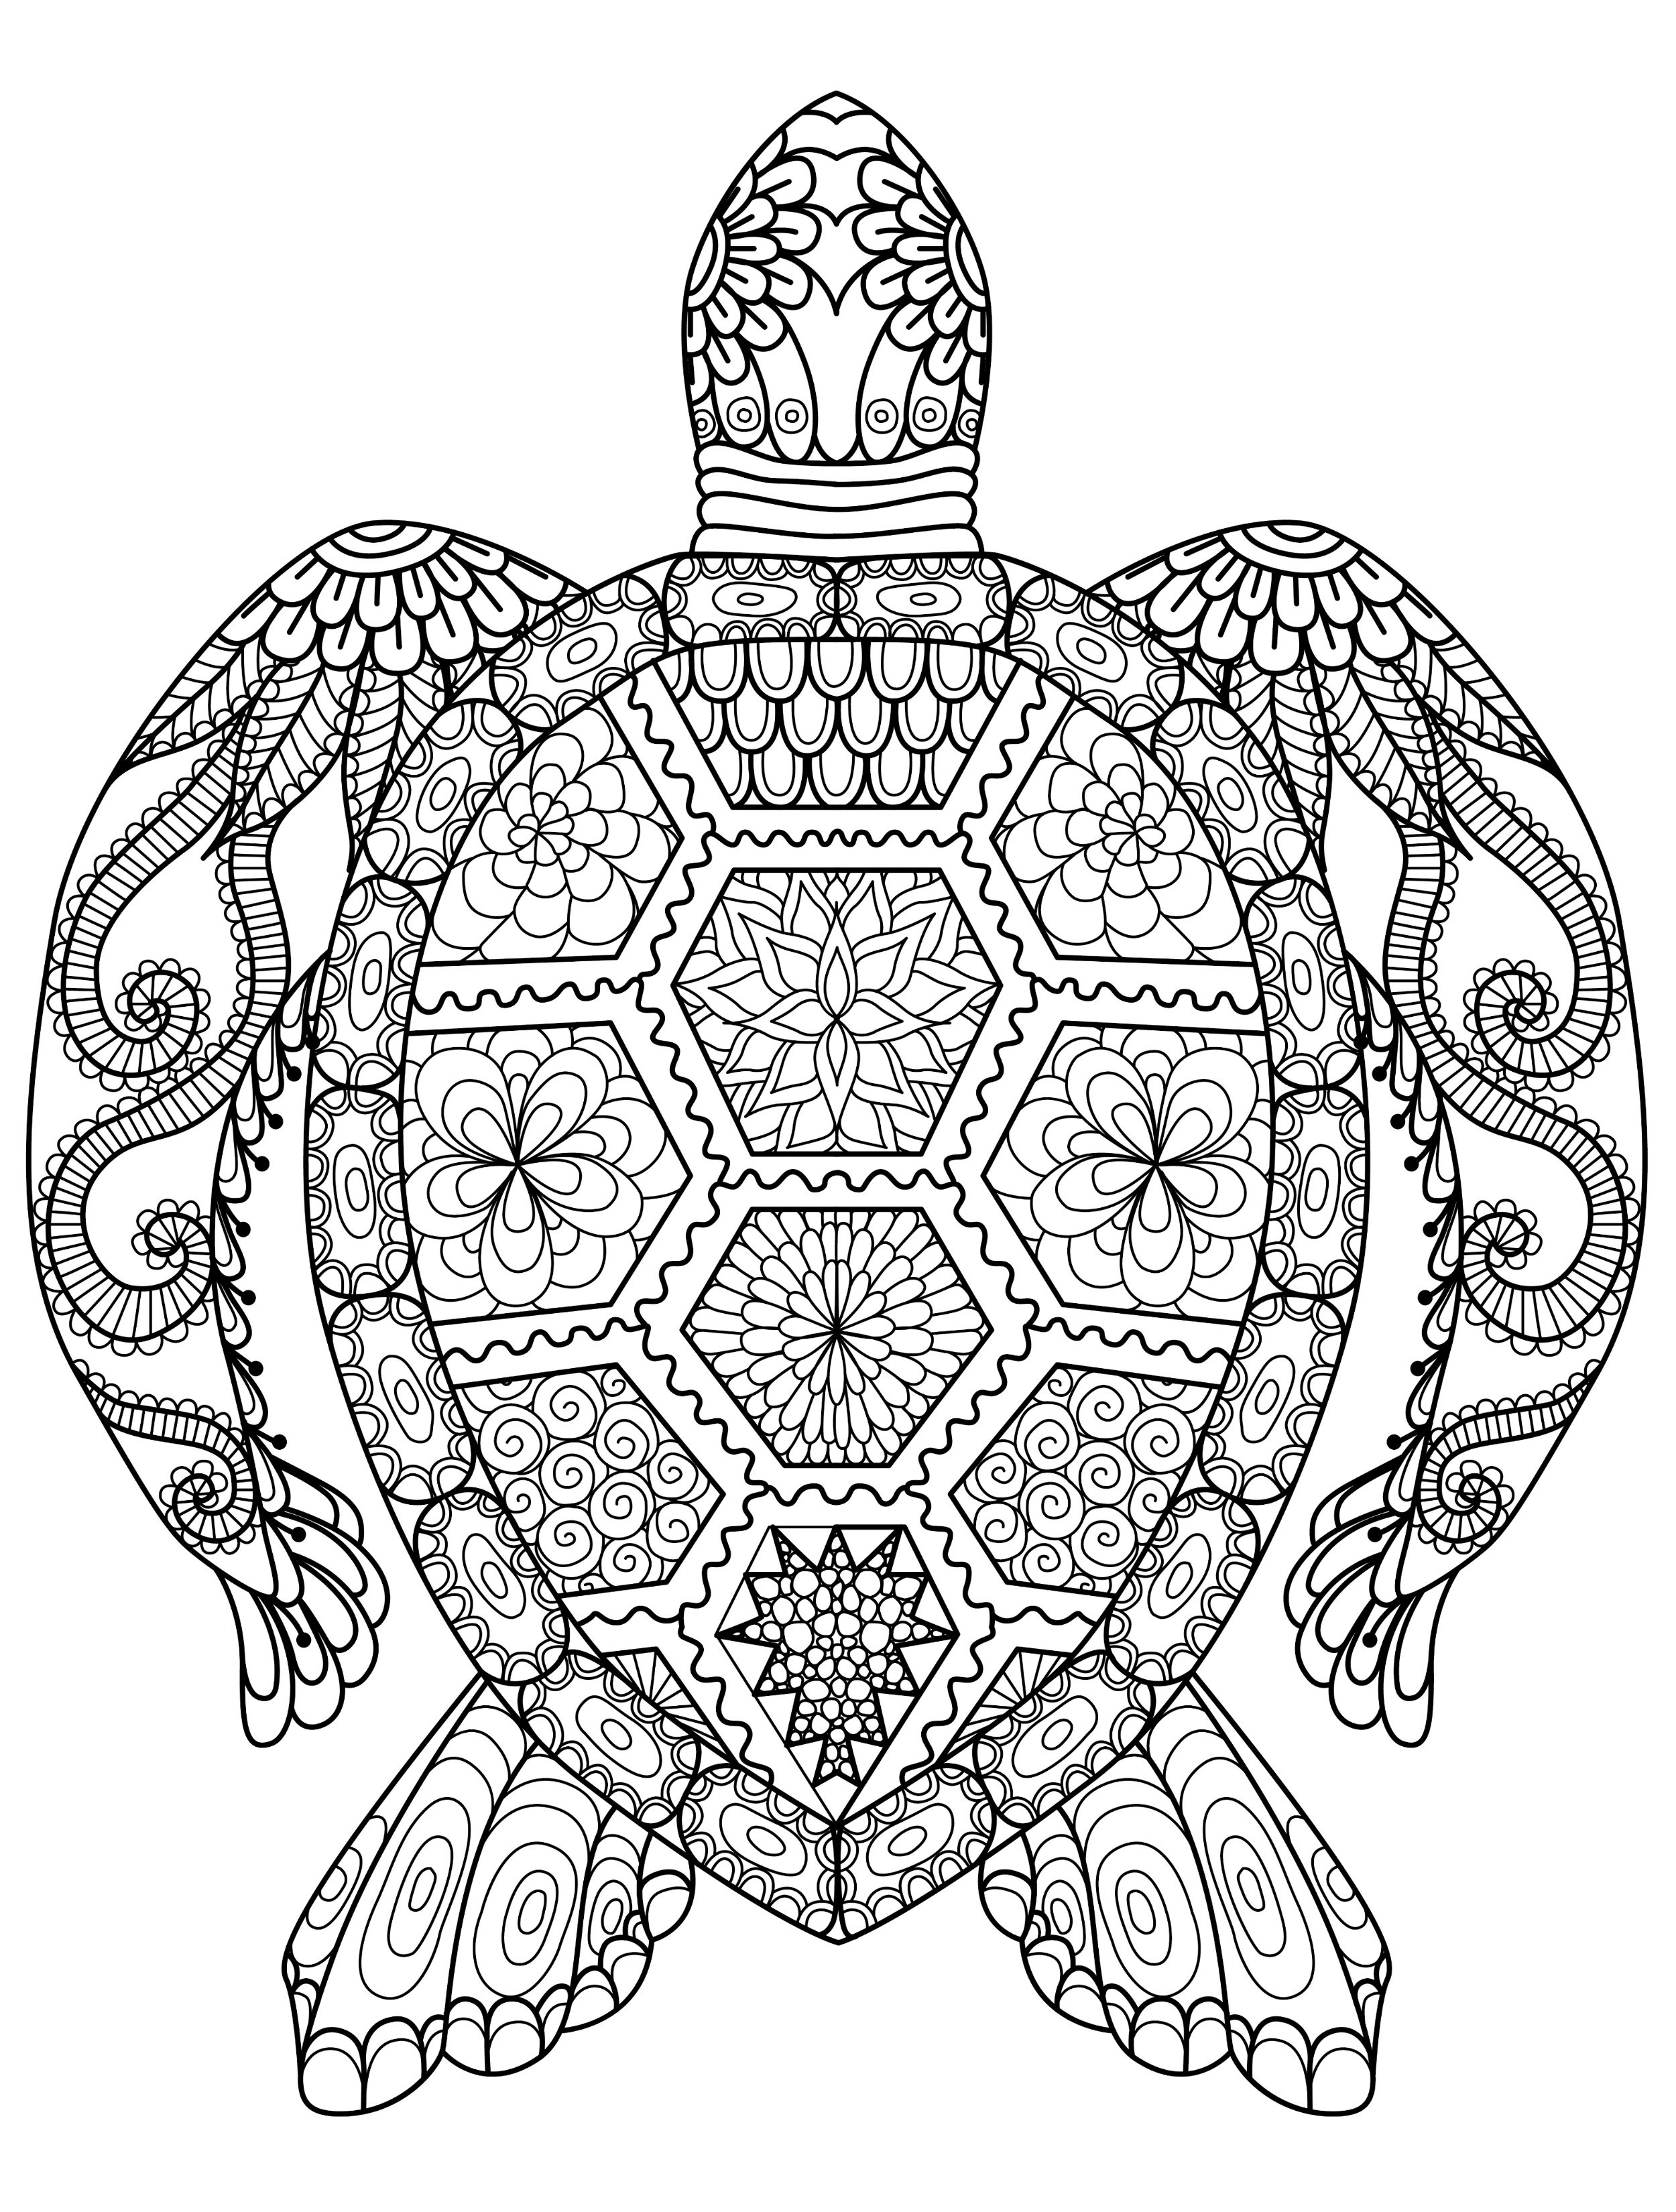 coloring pages to color online animal coloring pages for adults best coloring pages for color pages online to coloring